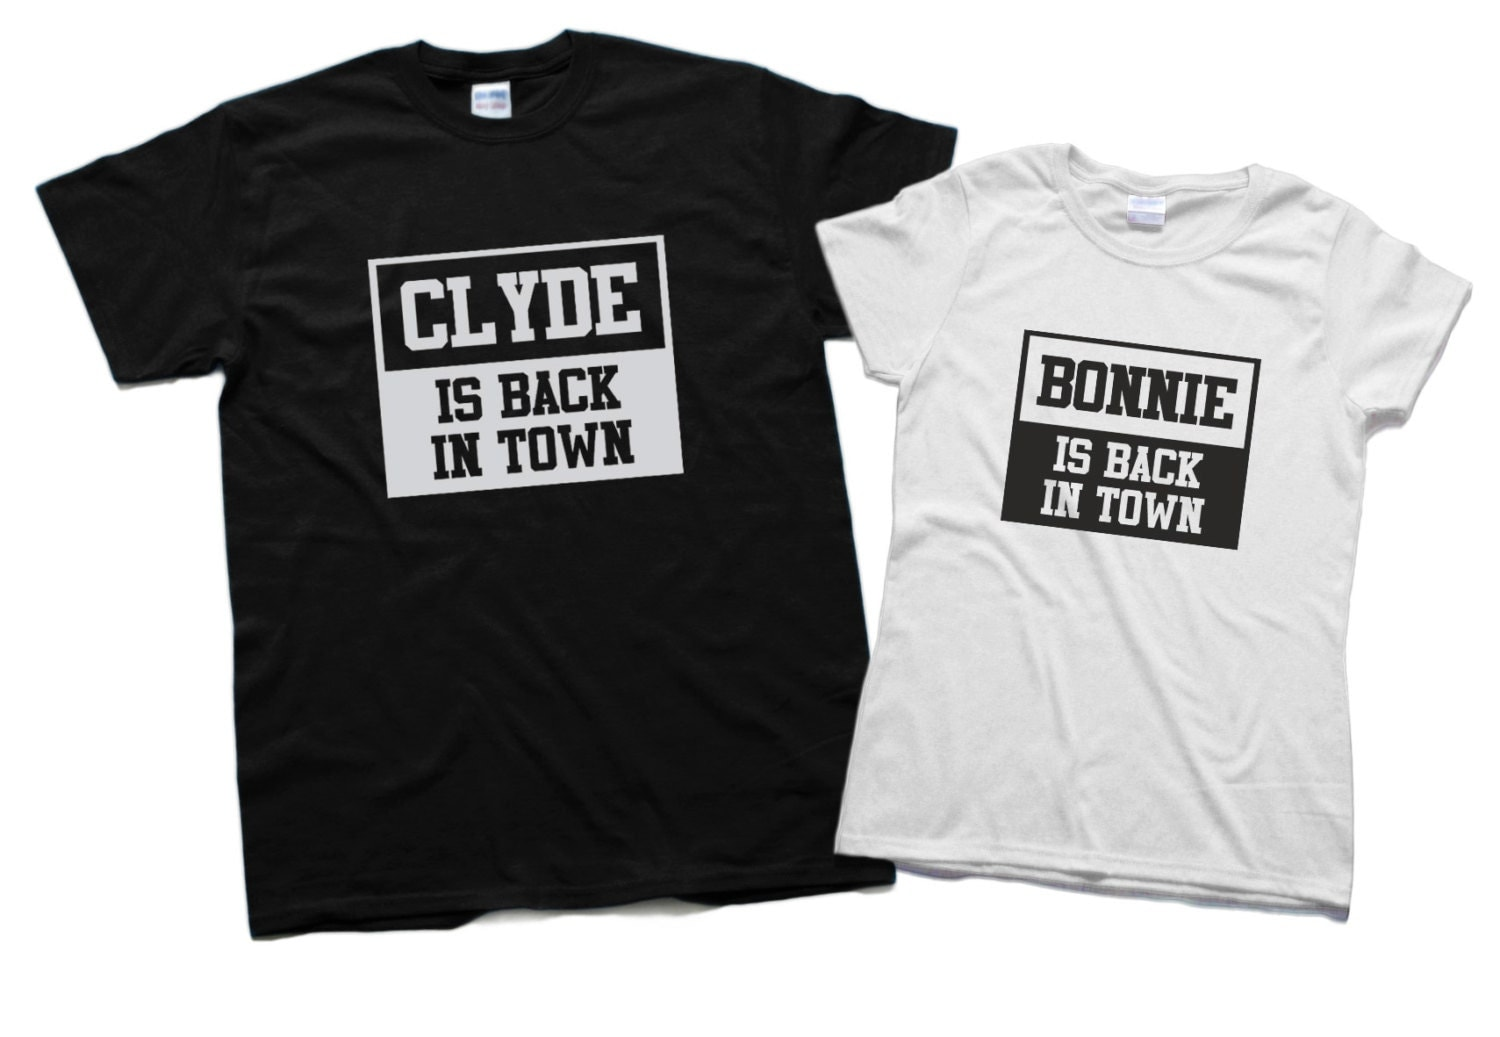 couples shirts bonnie and clyde shirts we go together matching. Black Bedroom Furniture Sets. Home Design Ideas